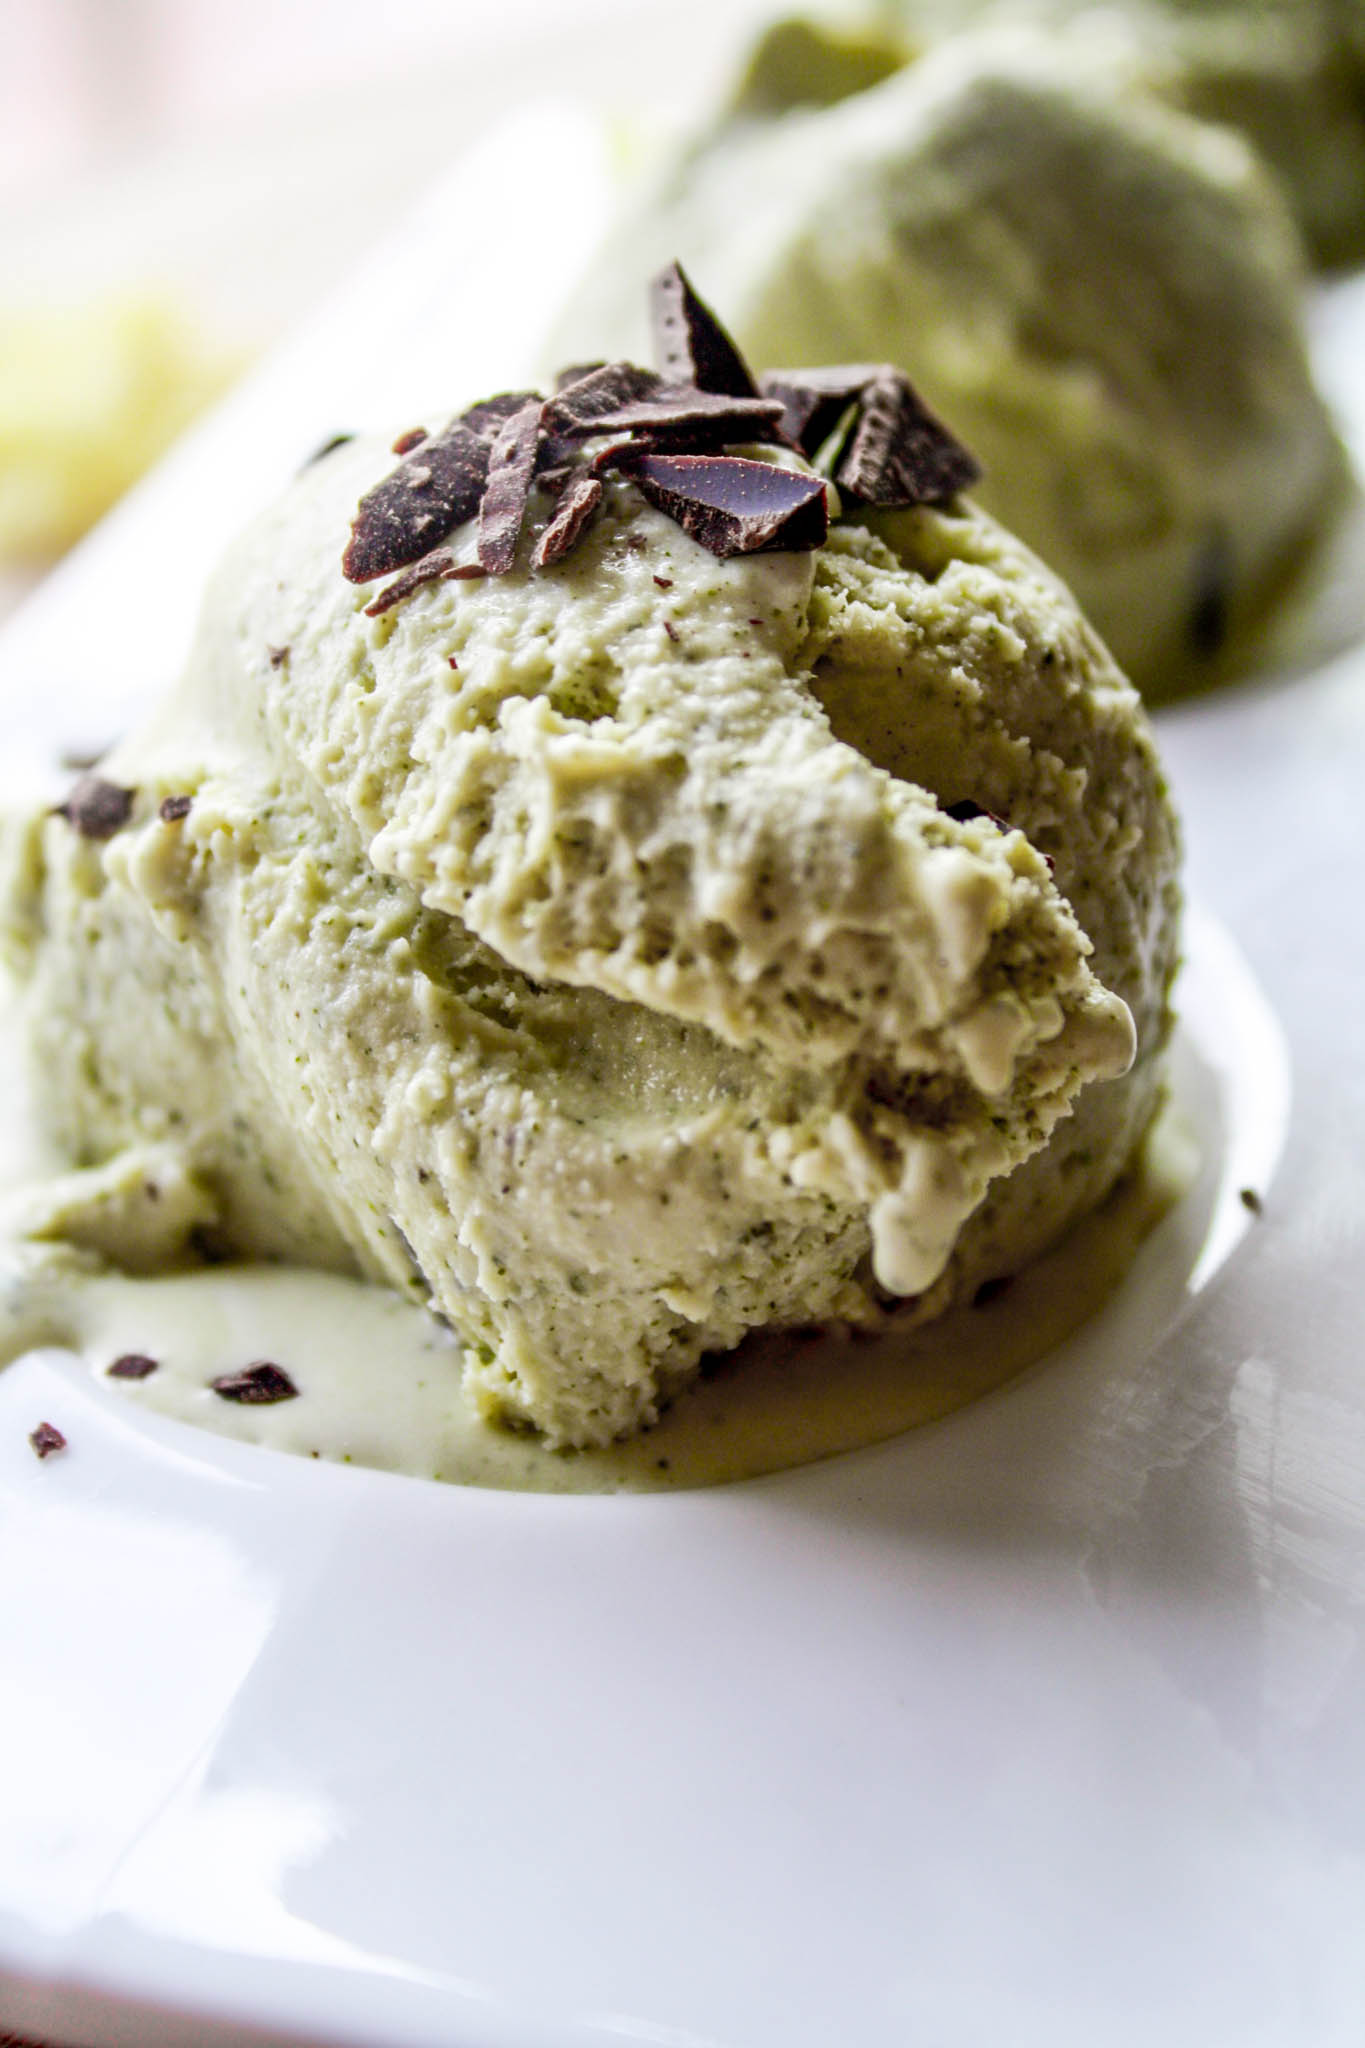 Photograph of a scoop of green tea ice cream on a white plate.